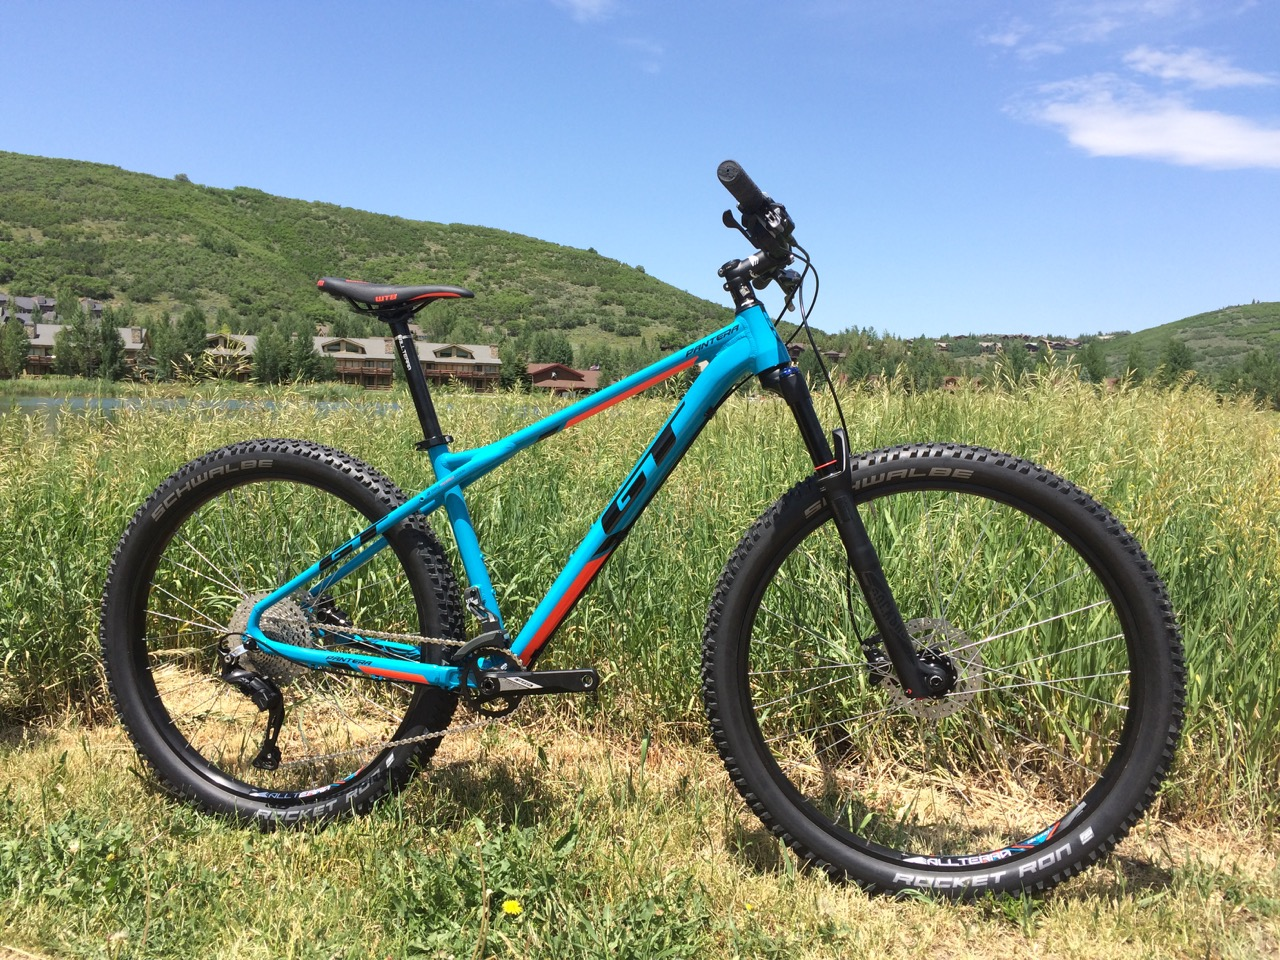 gt aggressor expert 27.5 review